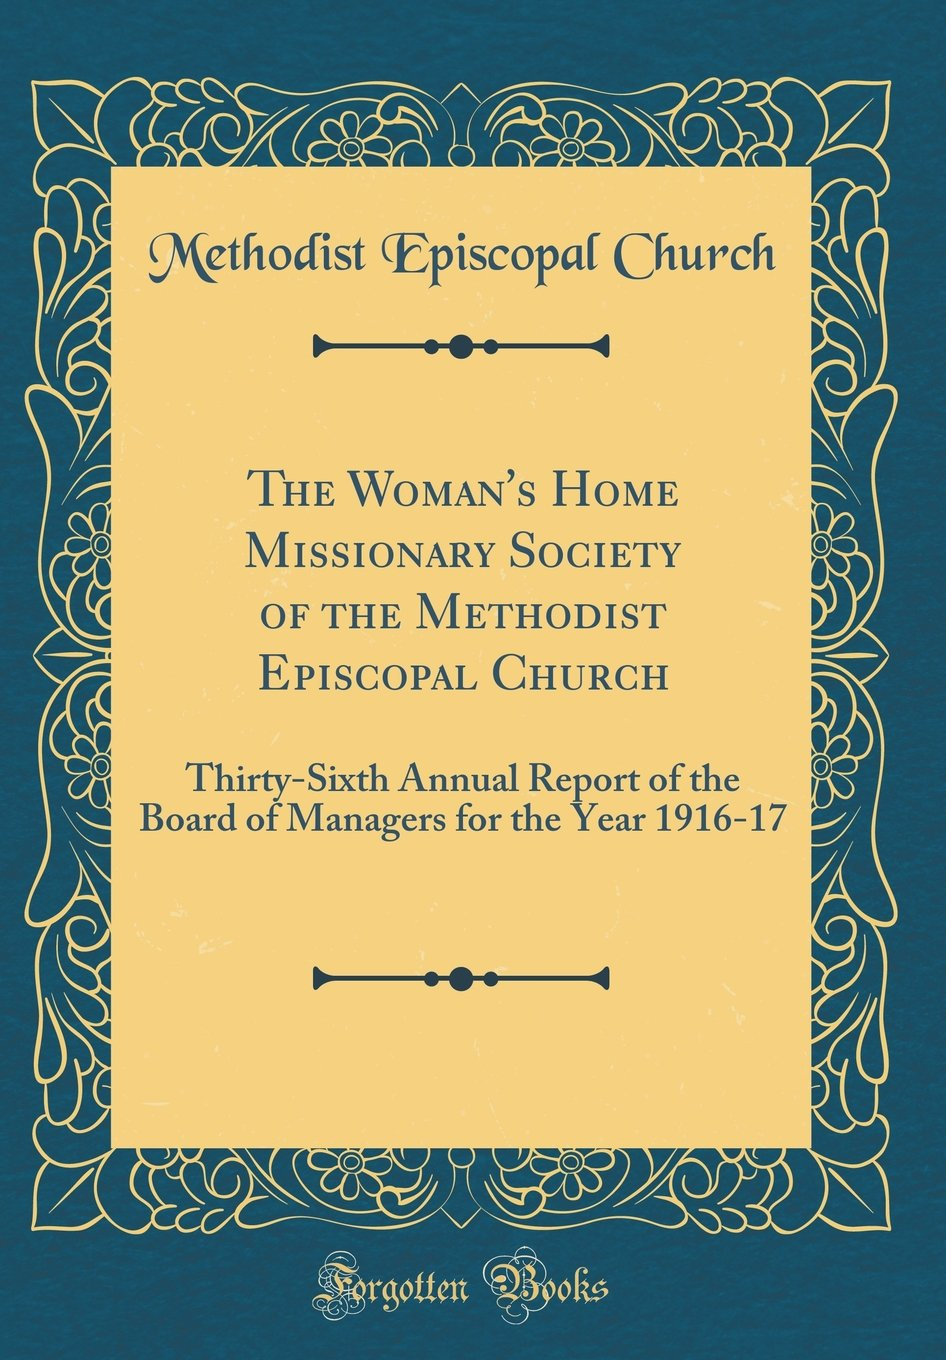 Download The Woman's Home Missionary Society of the Methodist Episcopal Church: Thirty-Sixth Annual Report of the Board of Managers for the Year 1916-17 (Classic Reprint) pdf